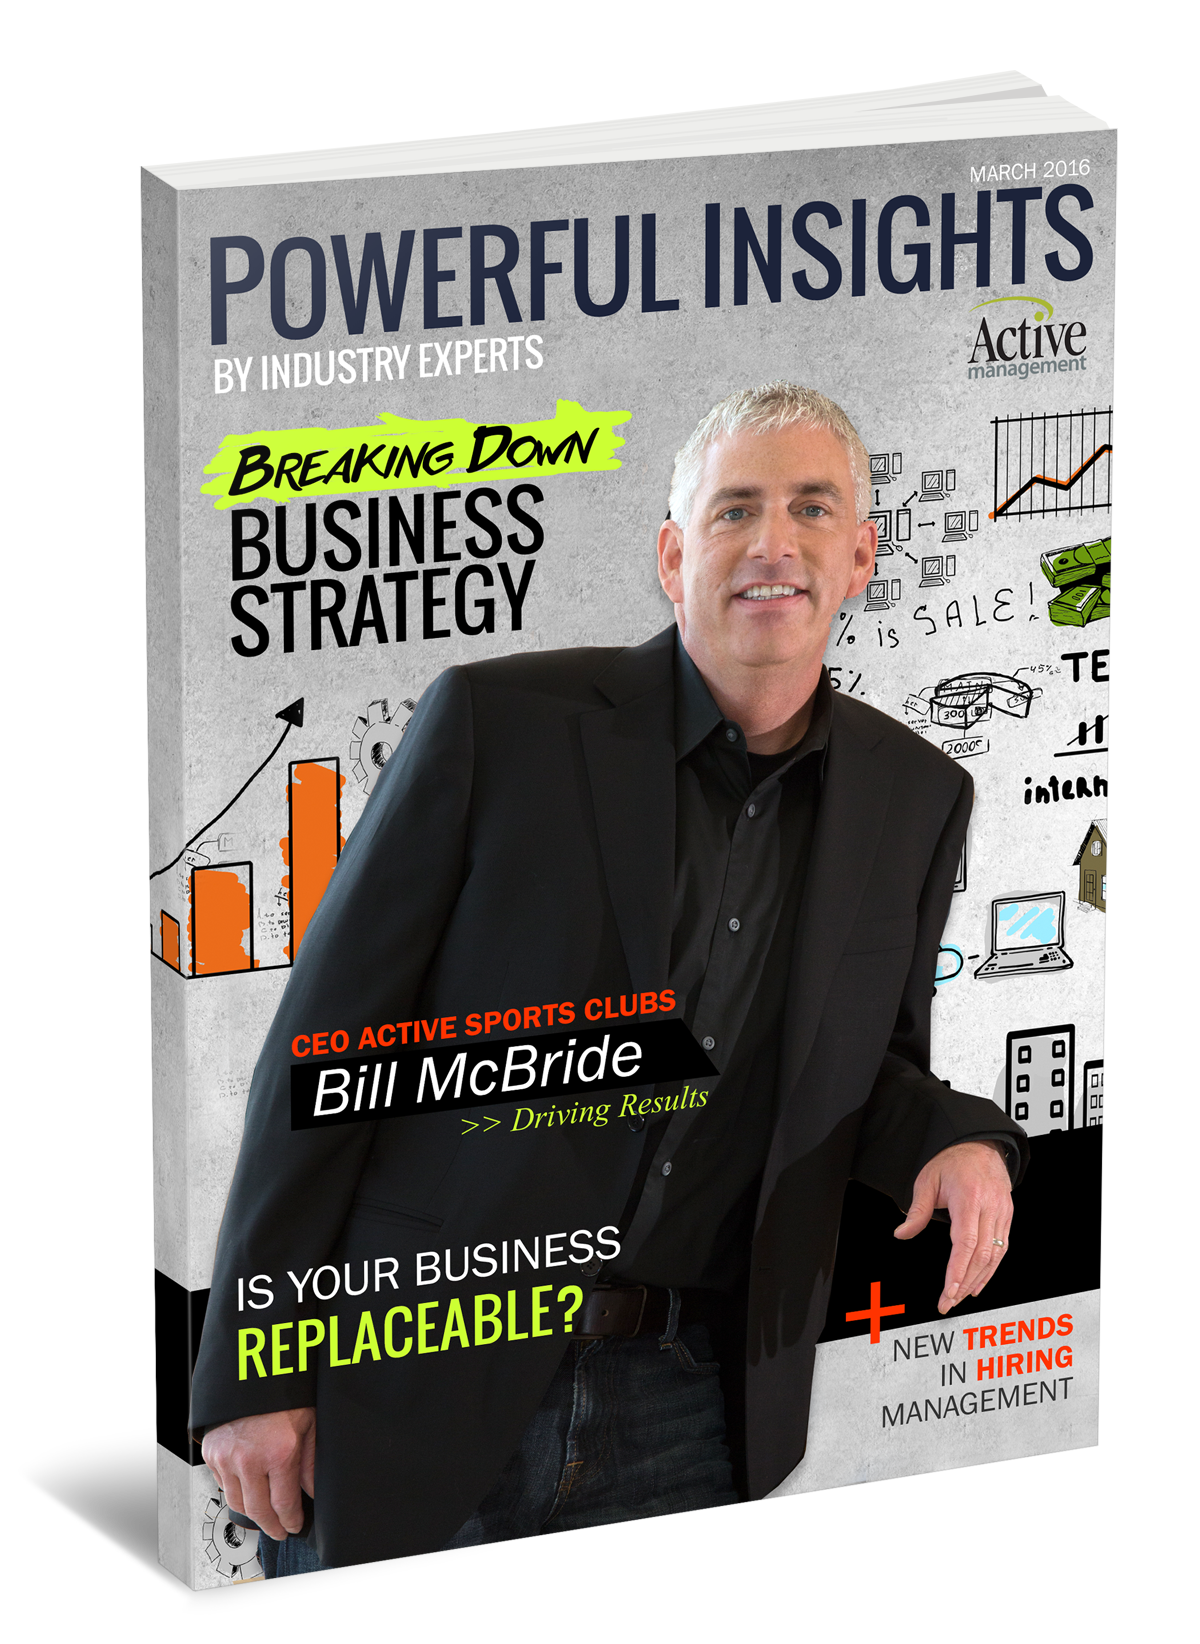 Powerful Insights with Bill McBride